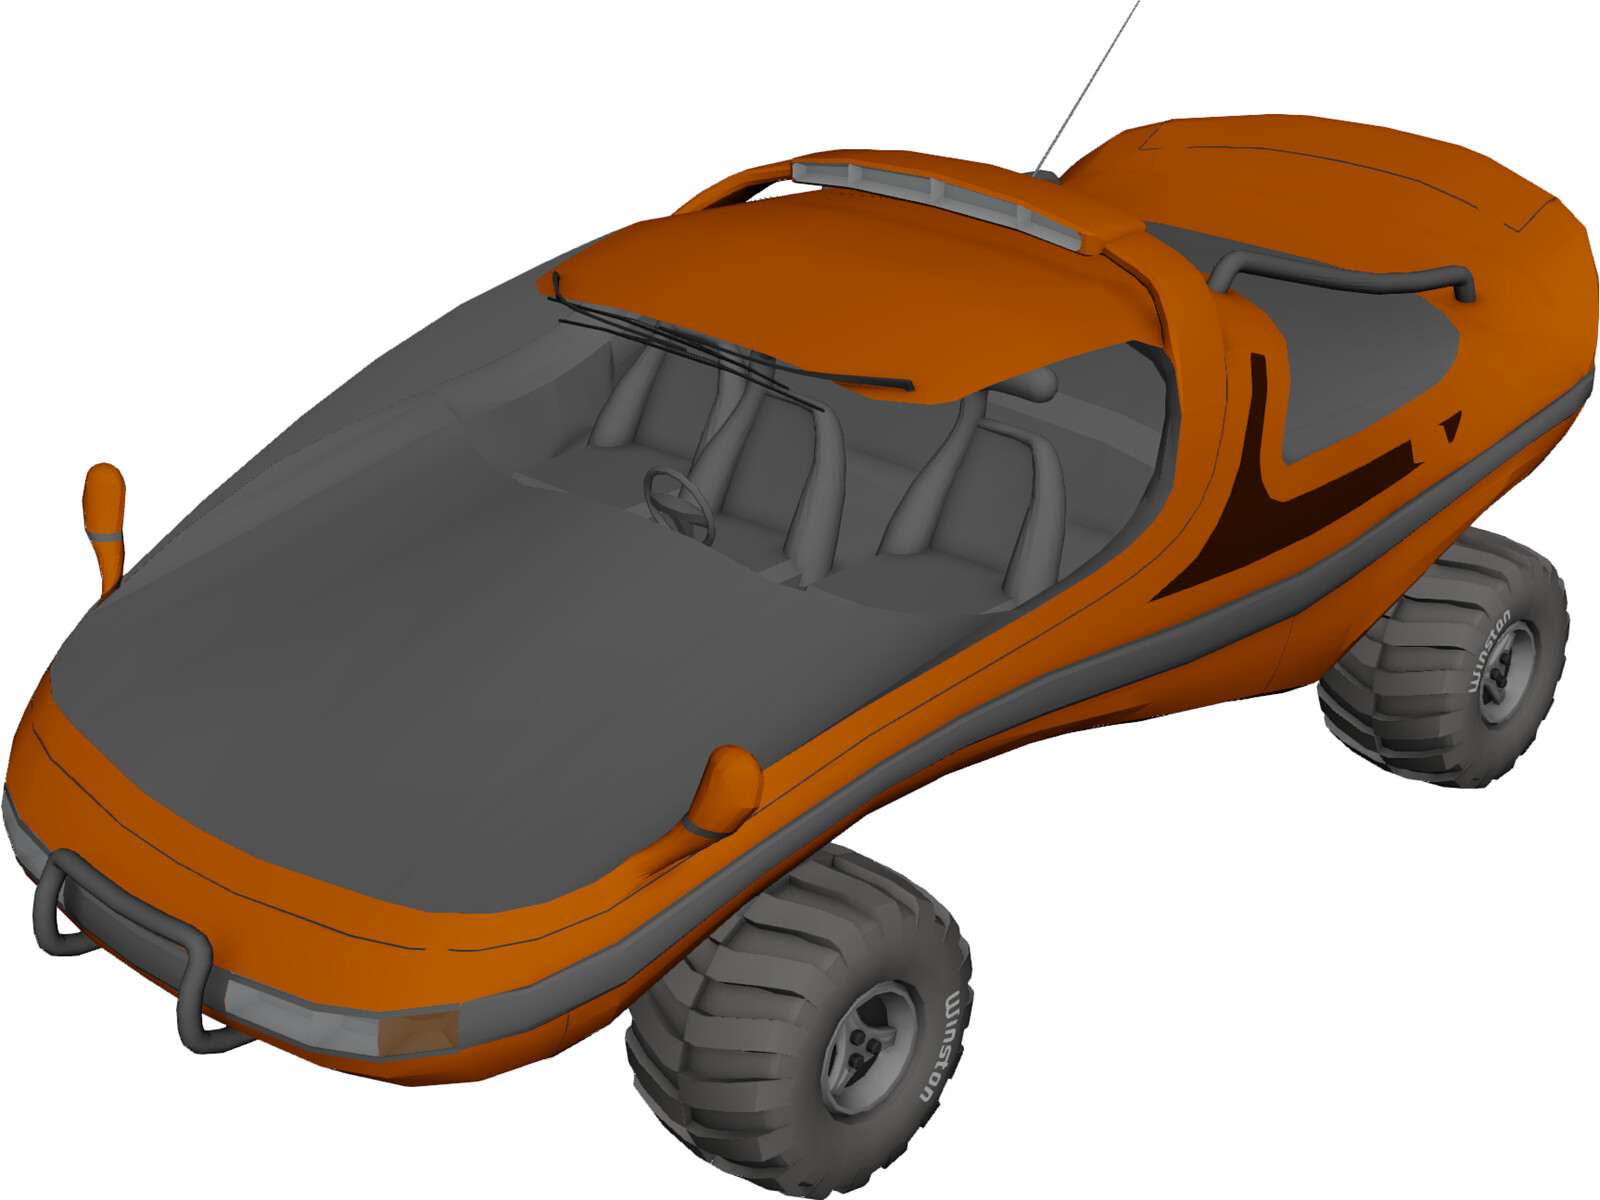 Buggy Concept 3D Model